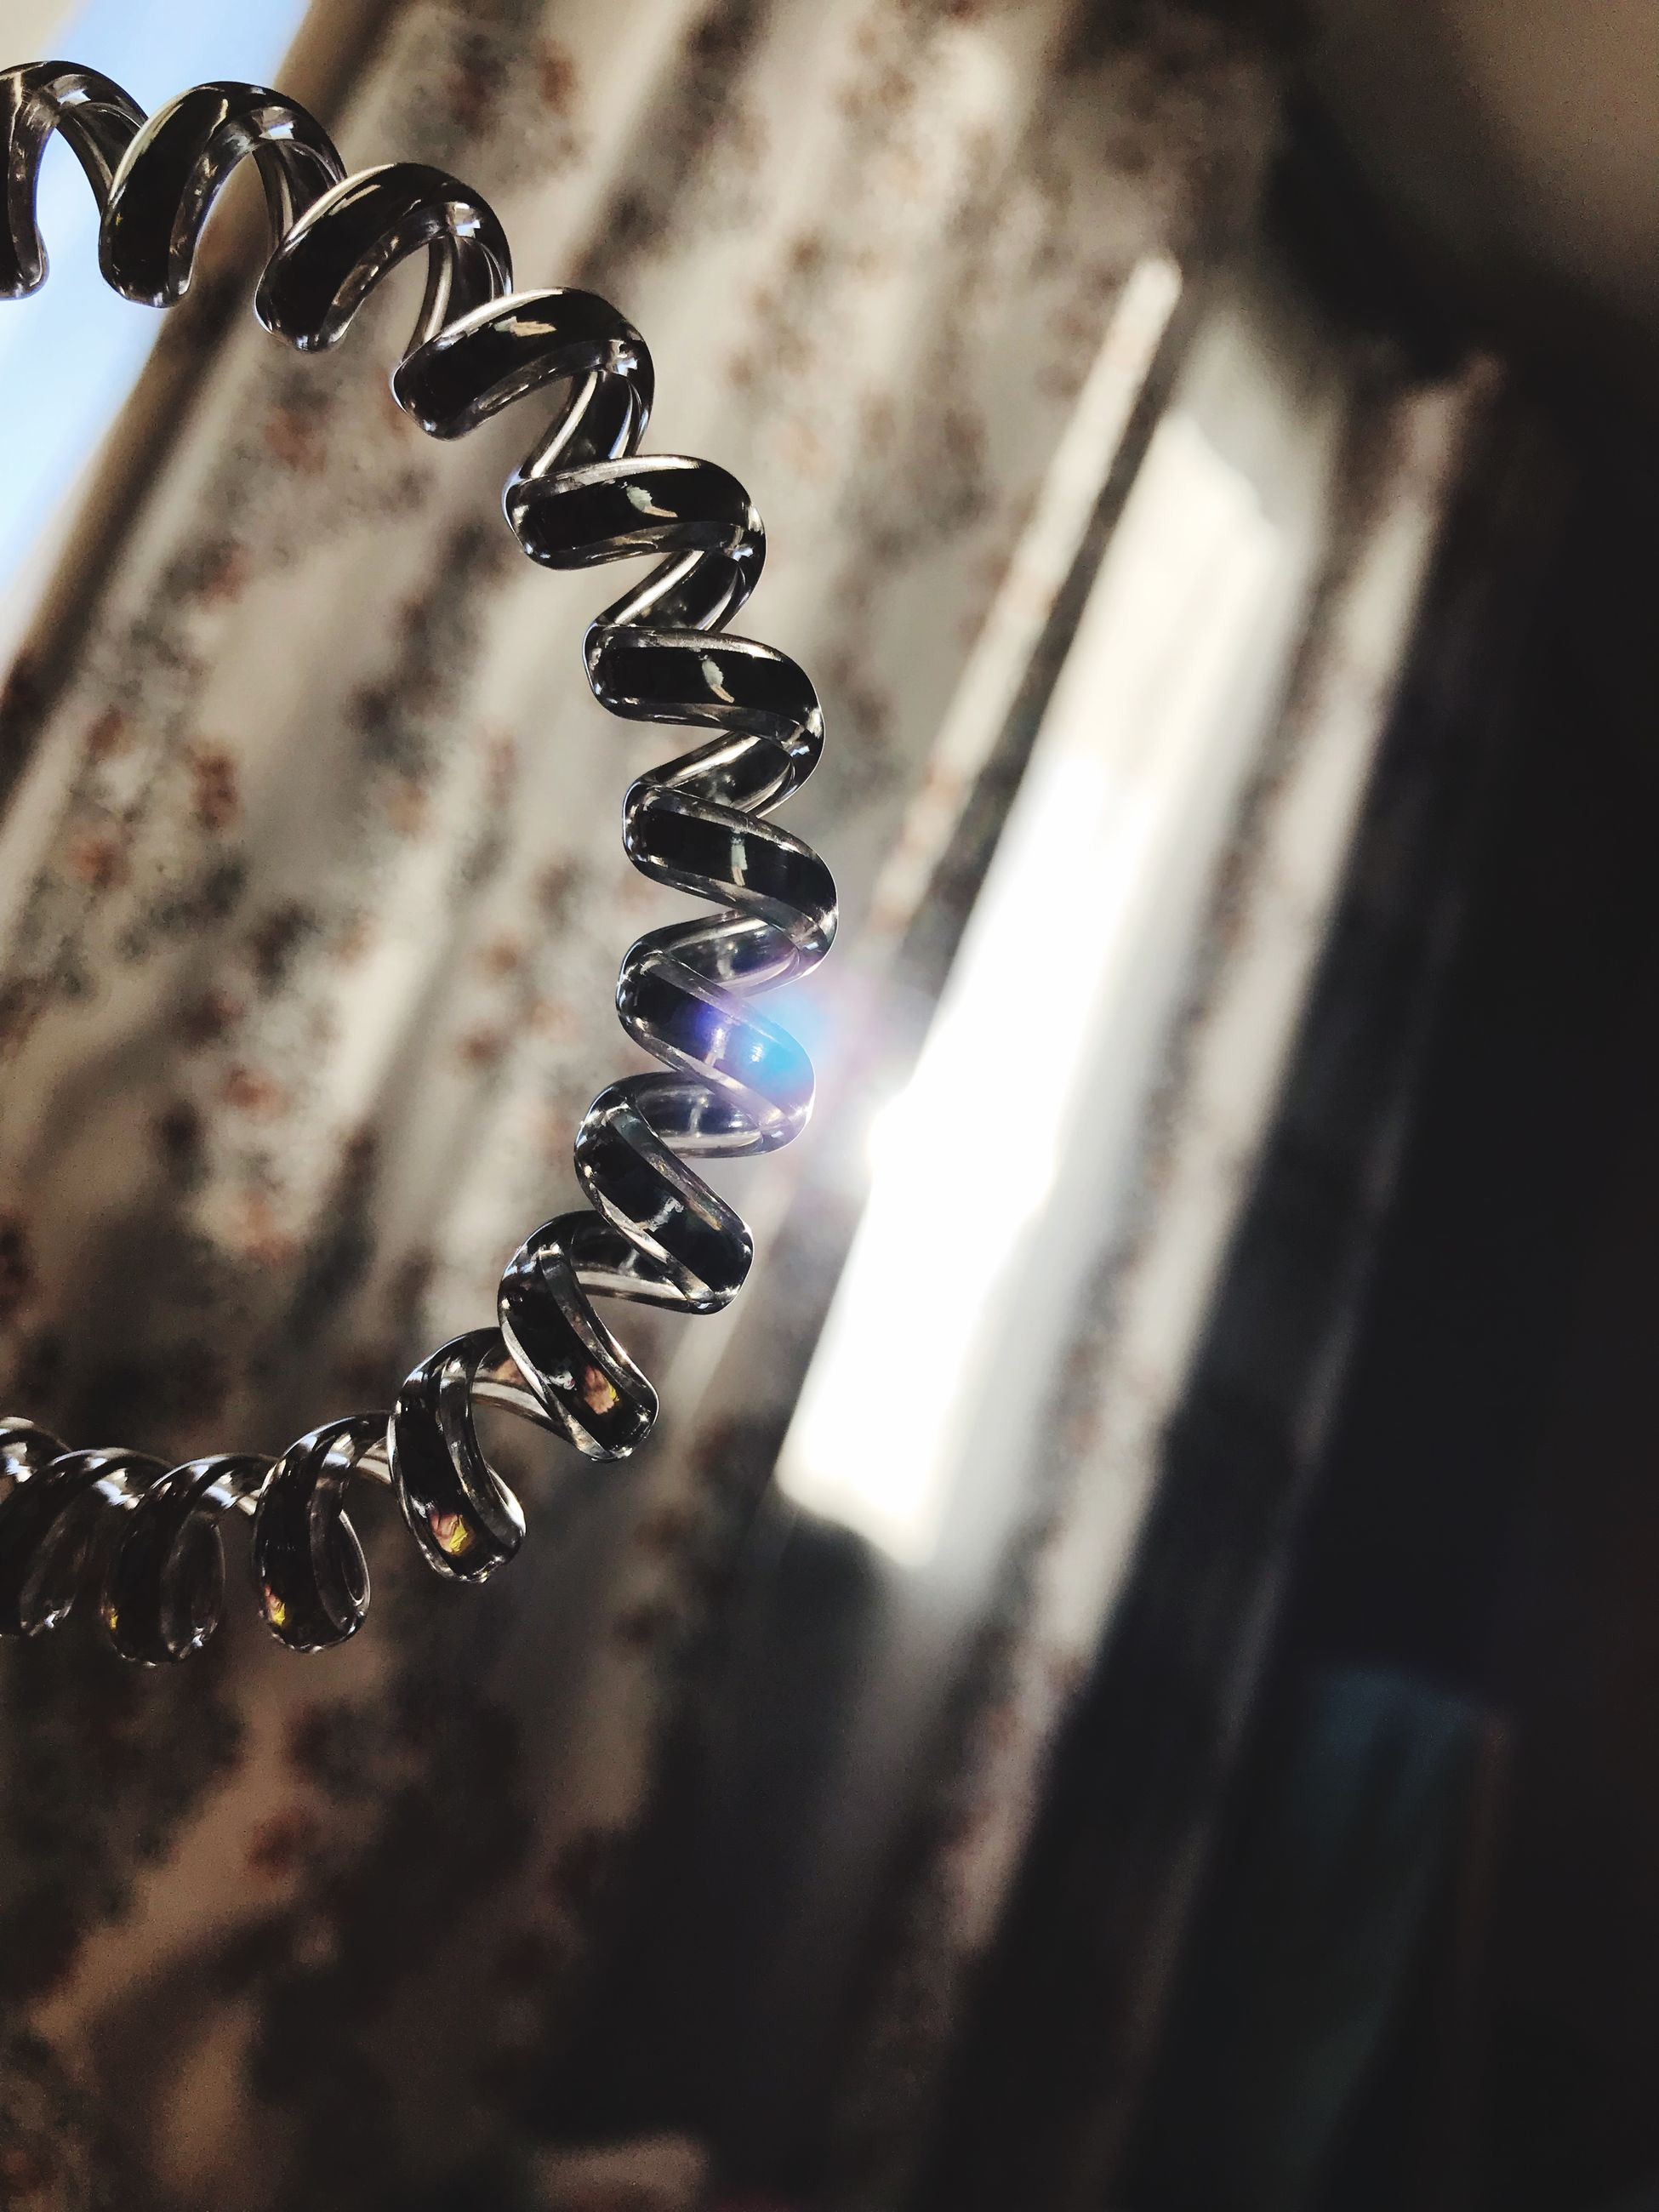 no people, close-up, metal, selective focus, indoors, focus on foreground, wood - material, jewelry, still life, nature, old, spiral, sunlight, day, in a row, illuminated, corkscrew, chain, personal accessory, ornate